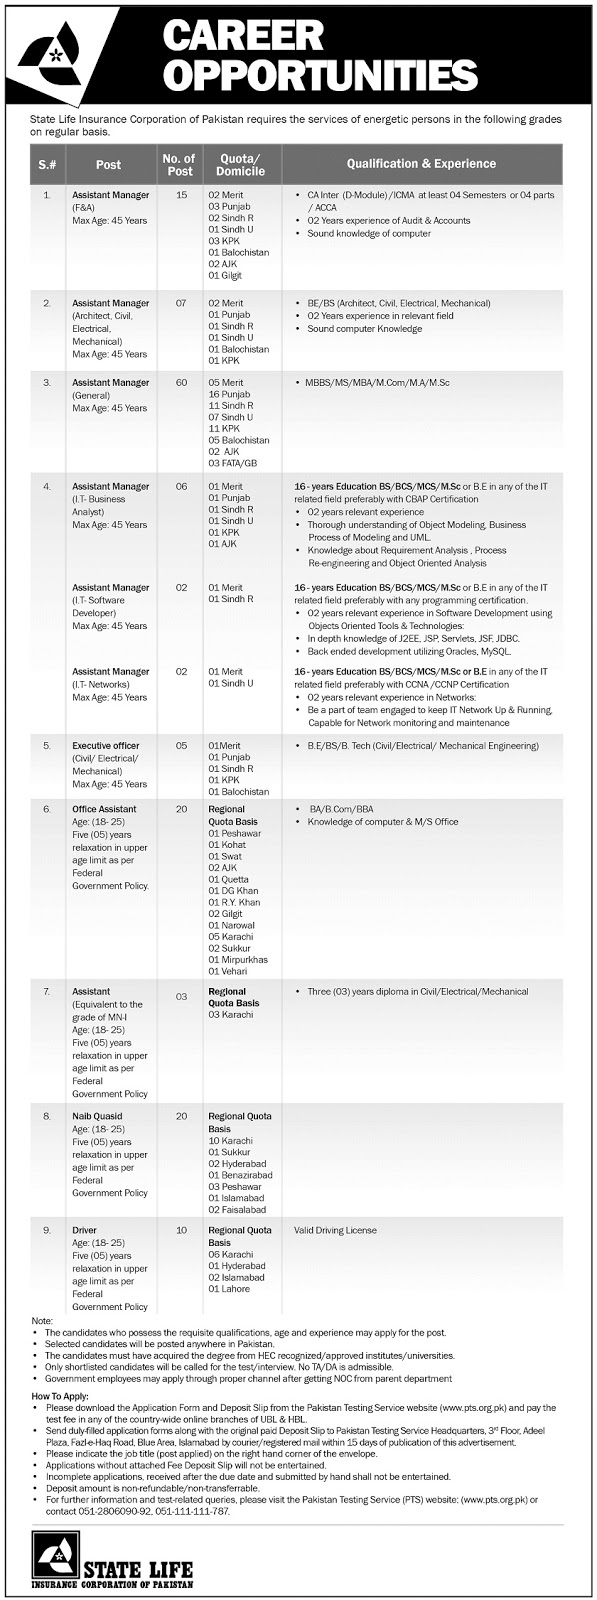 Jobs in Quetta, Jobs in Gilgit, Jobs in Narowal, Jobs in Vehari , Jobs in Mirpurkhas , Engineering Jobs in Pakistan , Jobs in Karachi , Jobs in Hyderbad , Jobs in Islamabad , Jobs in Lahore , Jobs in Sukkur , Jobs in Peshawar , Jobs in Benazirabad , Jobs in Faisalabad , Jobs in DG Khan